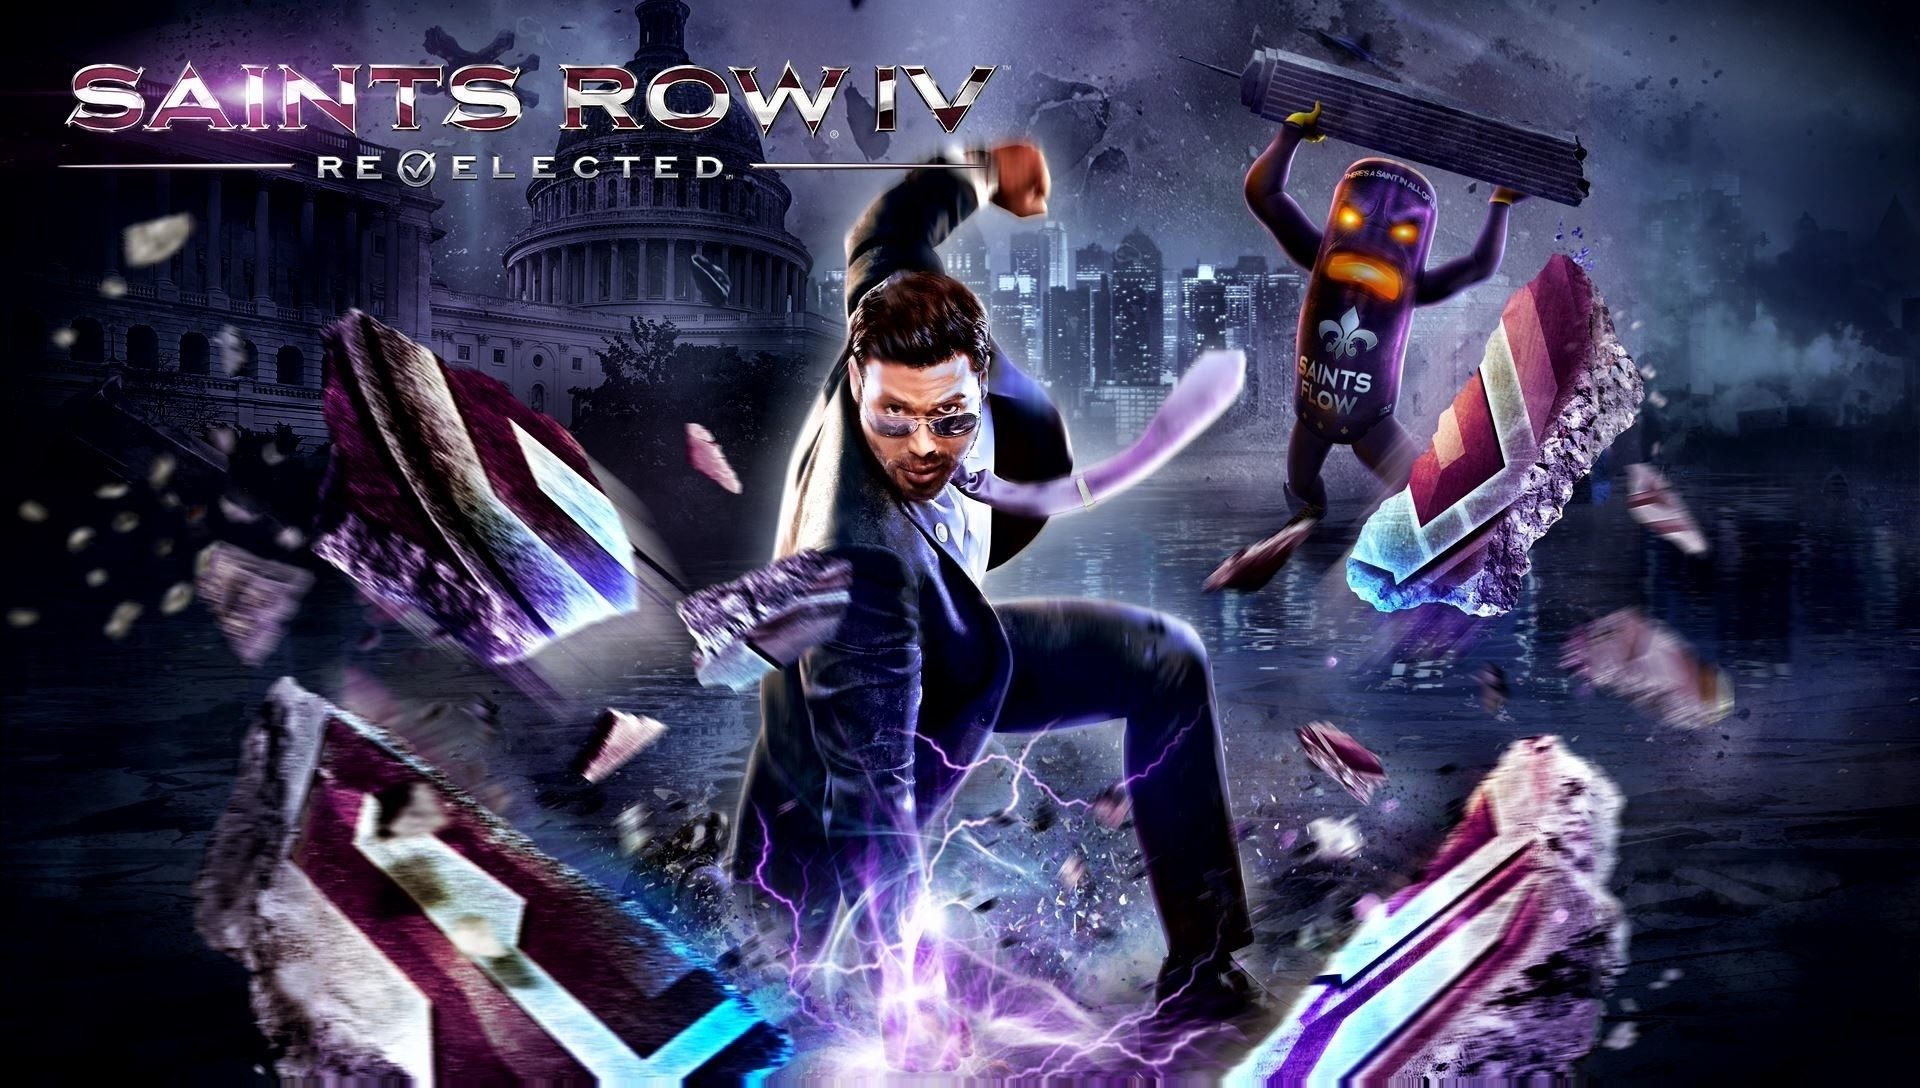 saints row iv: re-elected full hd wallpaper and background image